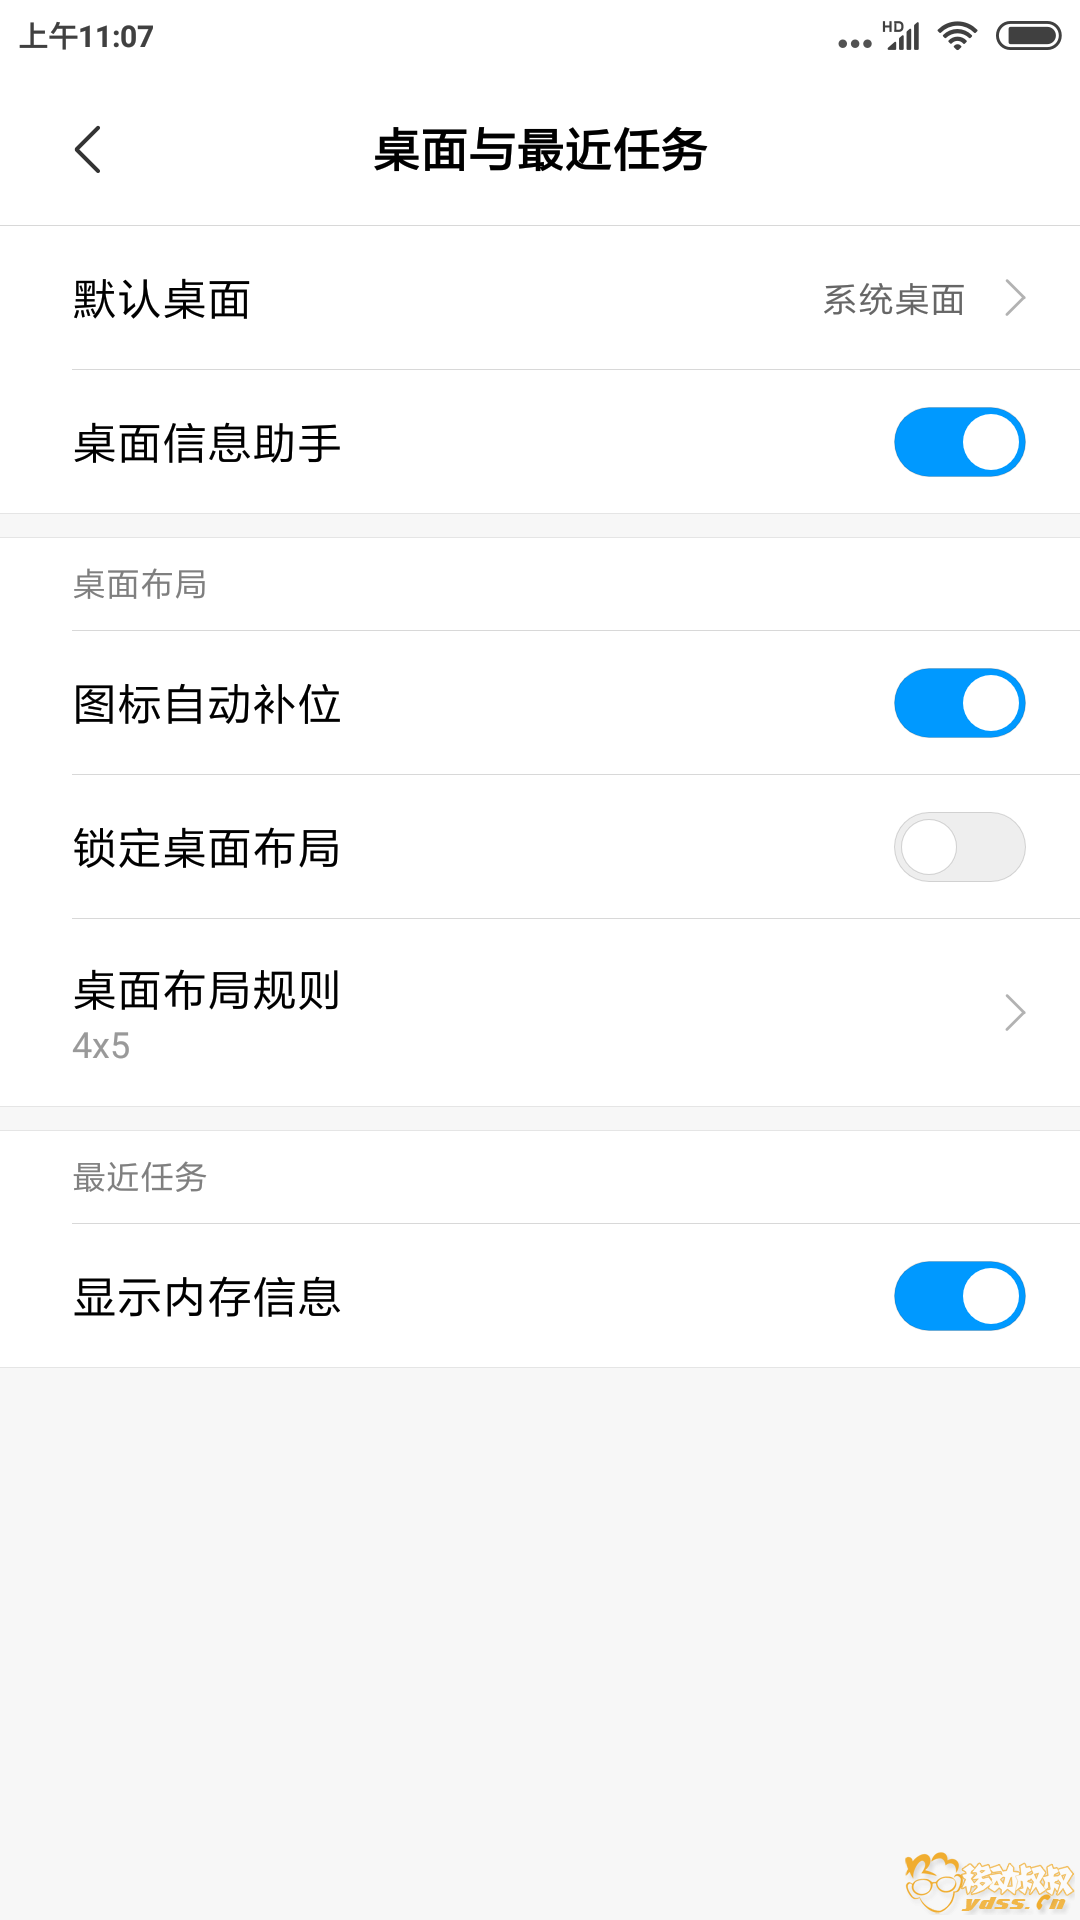 Screenshot_2018-07-02-11-07-28-956_com.miui.home.png